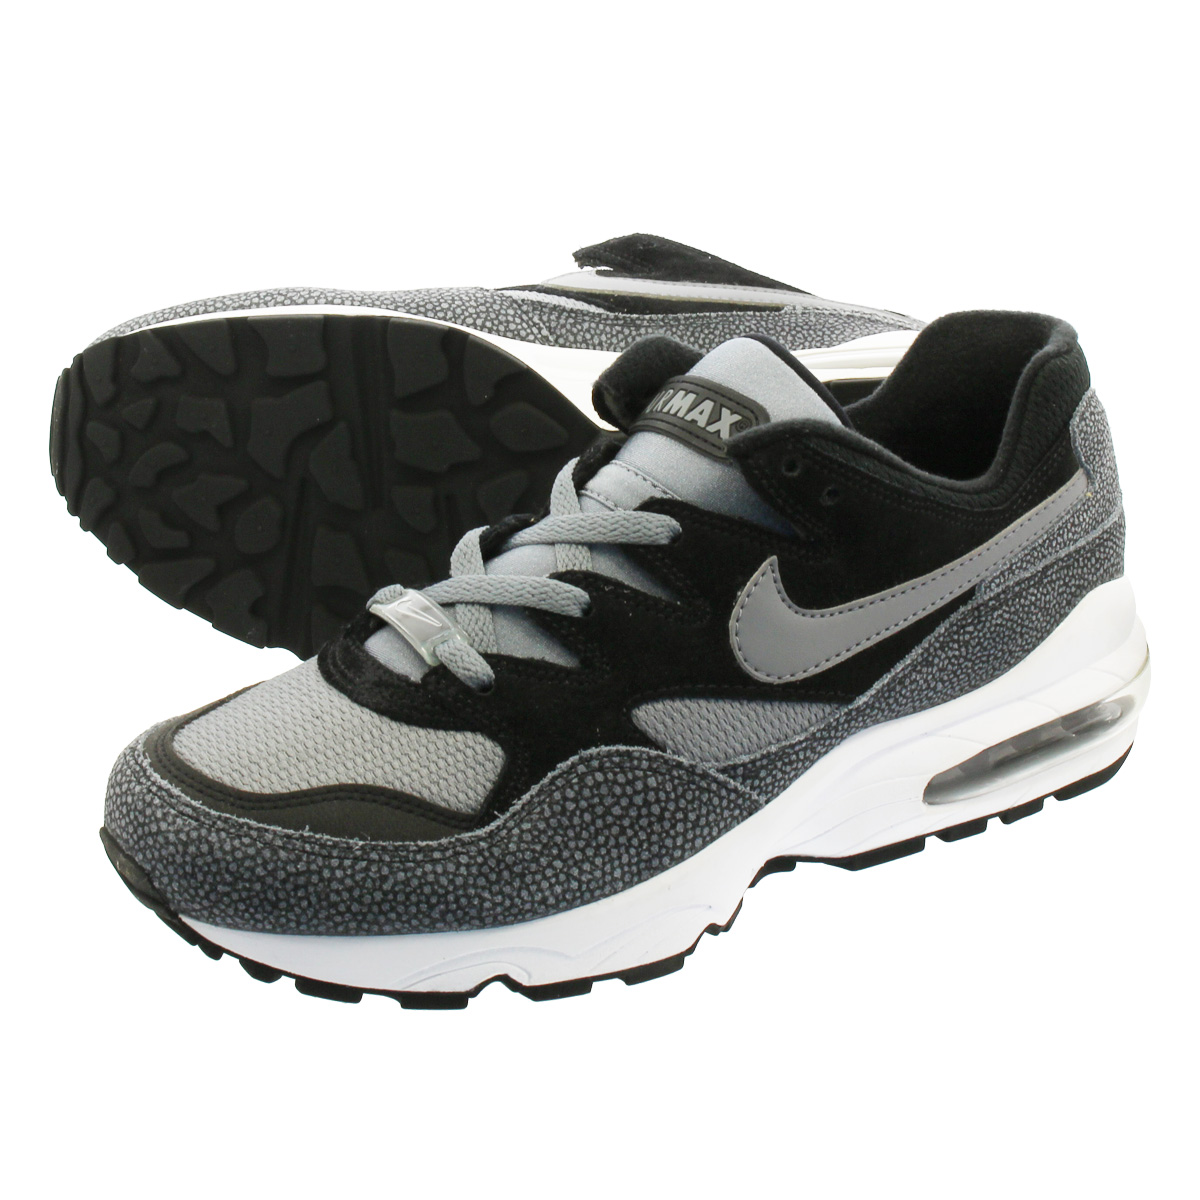 LOWTEX PLUS  NIKE AIR MAX 94 Kie Ney AMAX 94 BLACK GREY av8197-001 ... 5babe8691